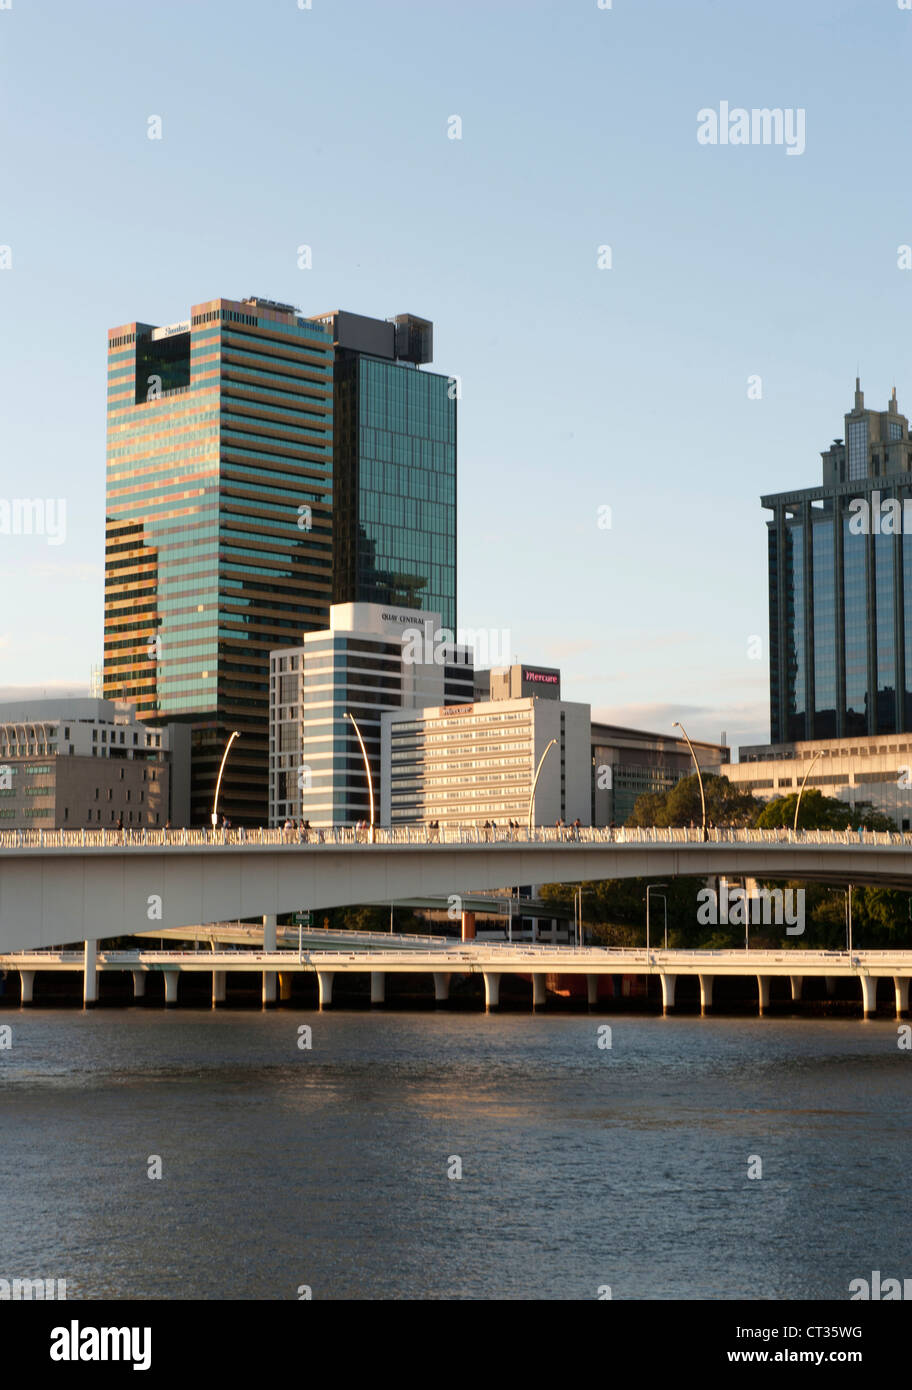 Skyline of the CBD of Brisbane, capital of Queensland, with Brisbane River, seen from South Bank - Stock Image